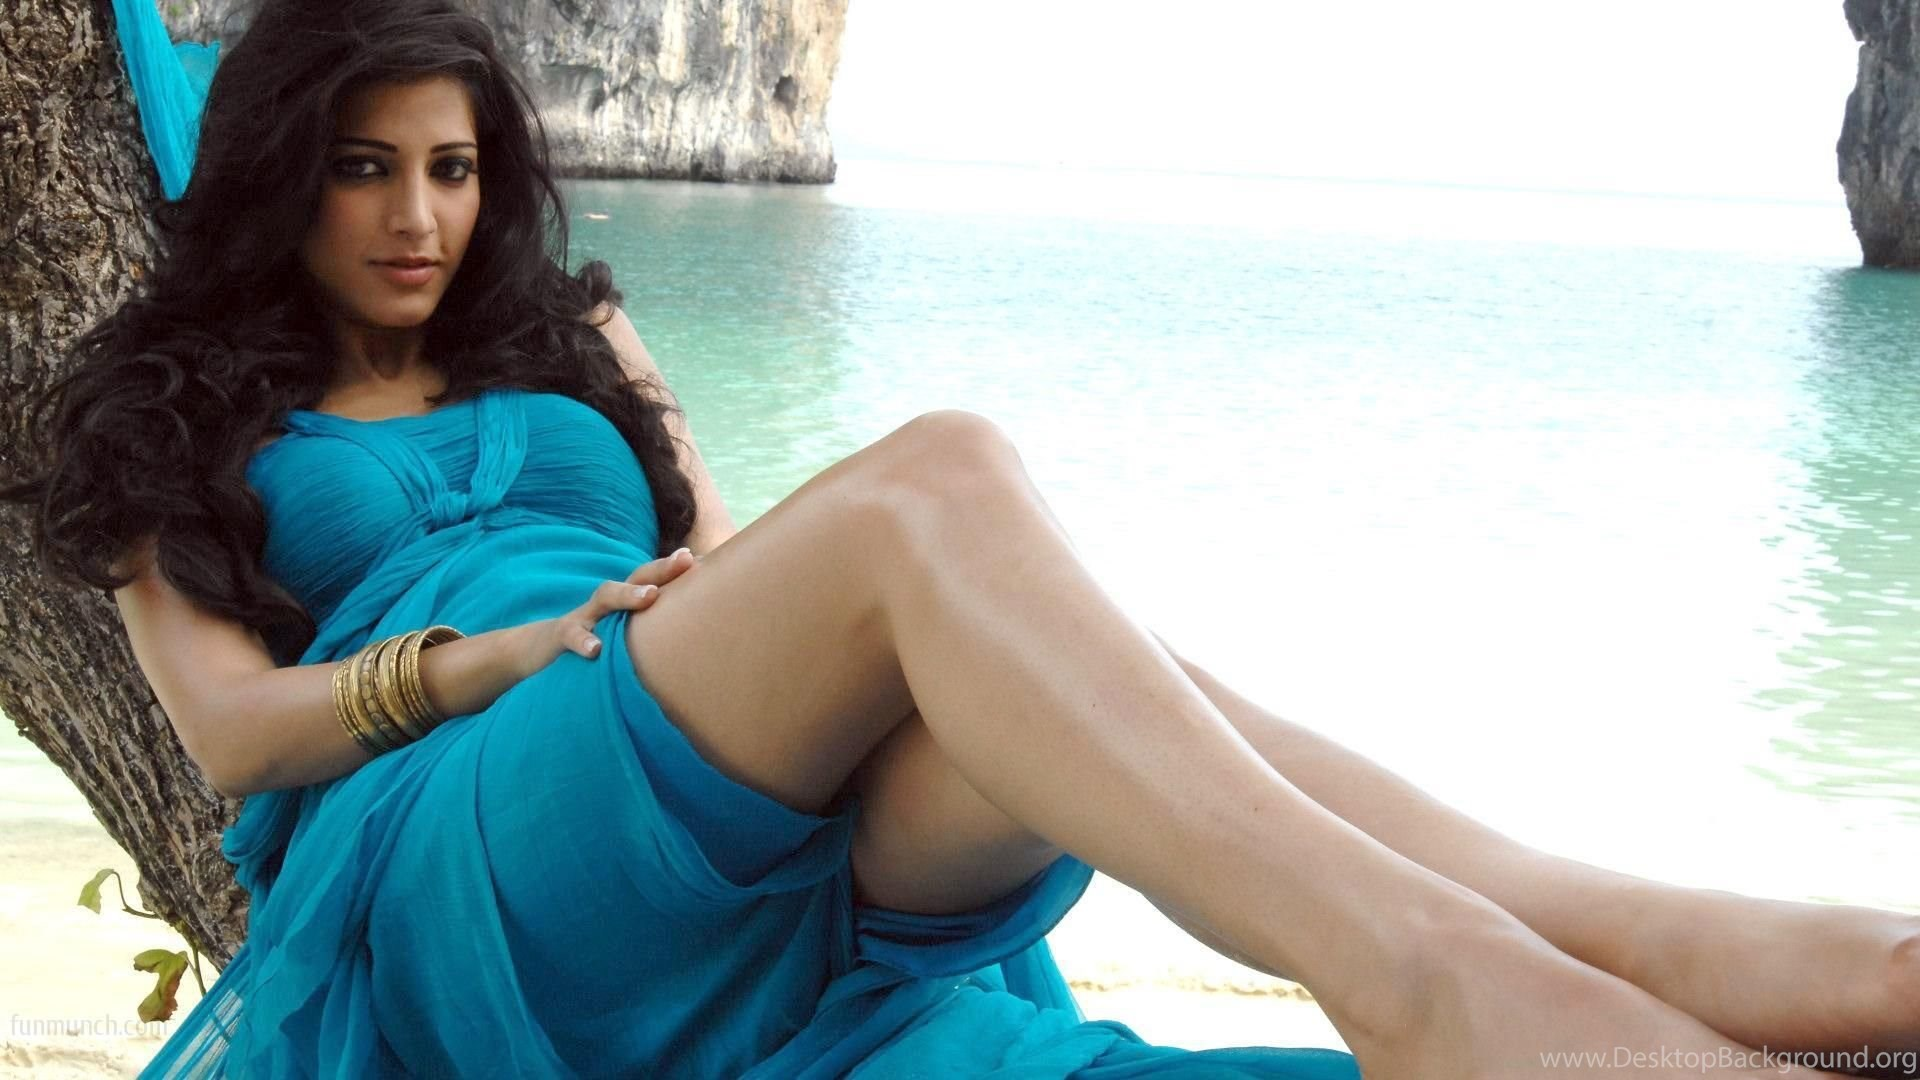 Shruti Hassan Hot 1920x1080 Hd Wallpapers And Free Stock Photo